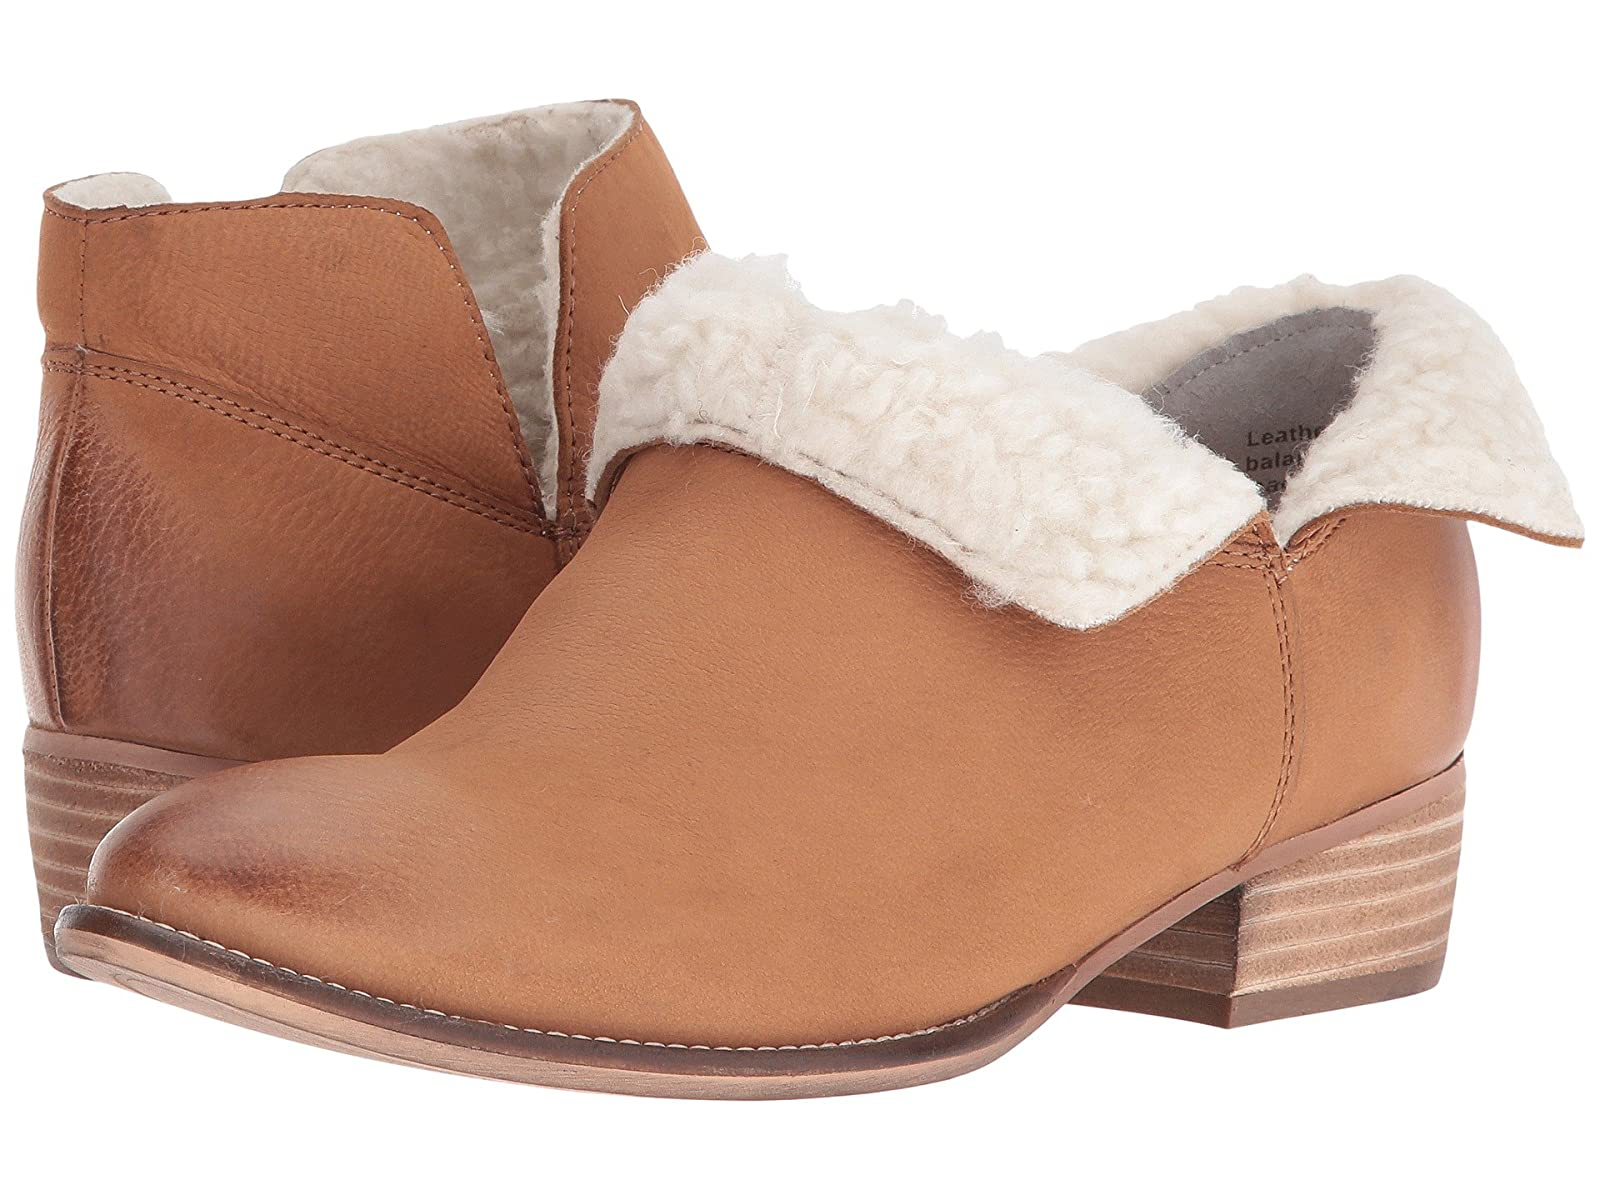 Seychelles Snare CozyCheap and distinctive eye-catching shoes